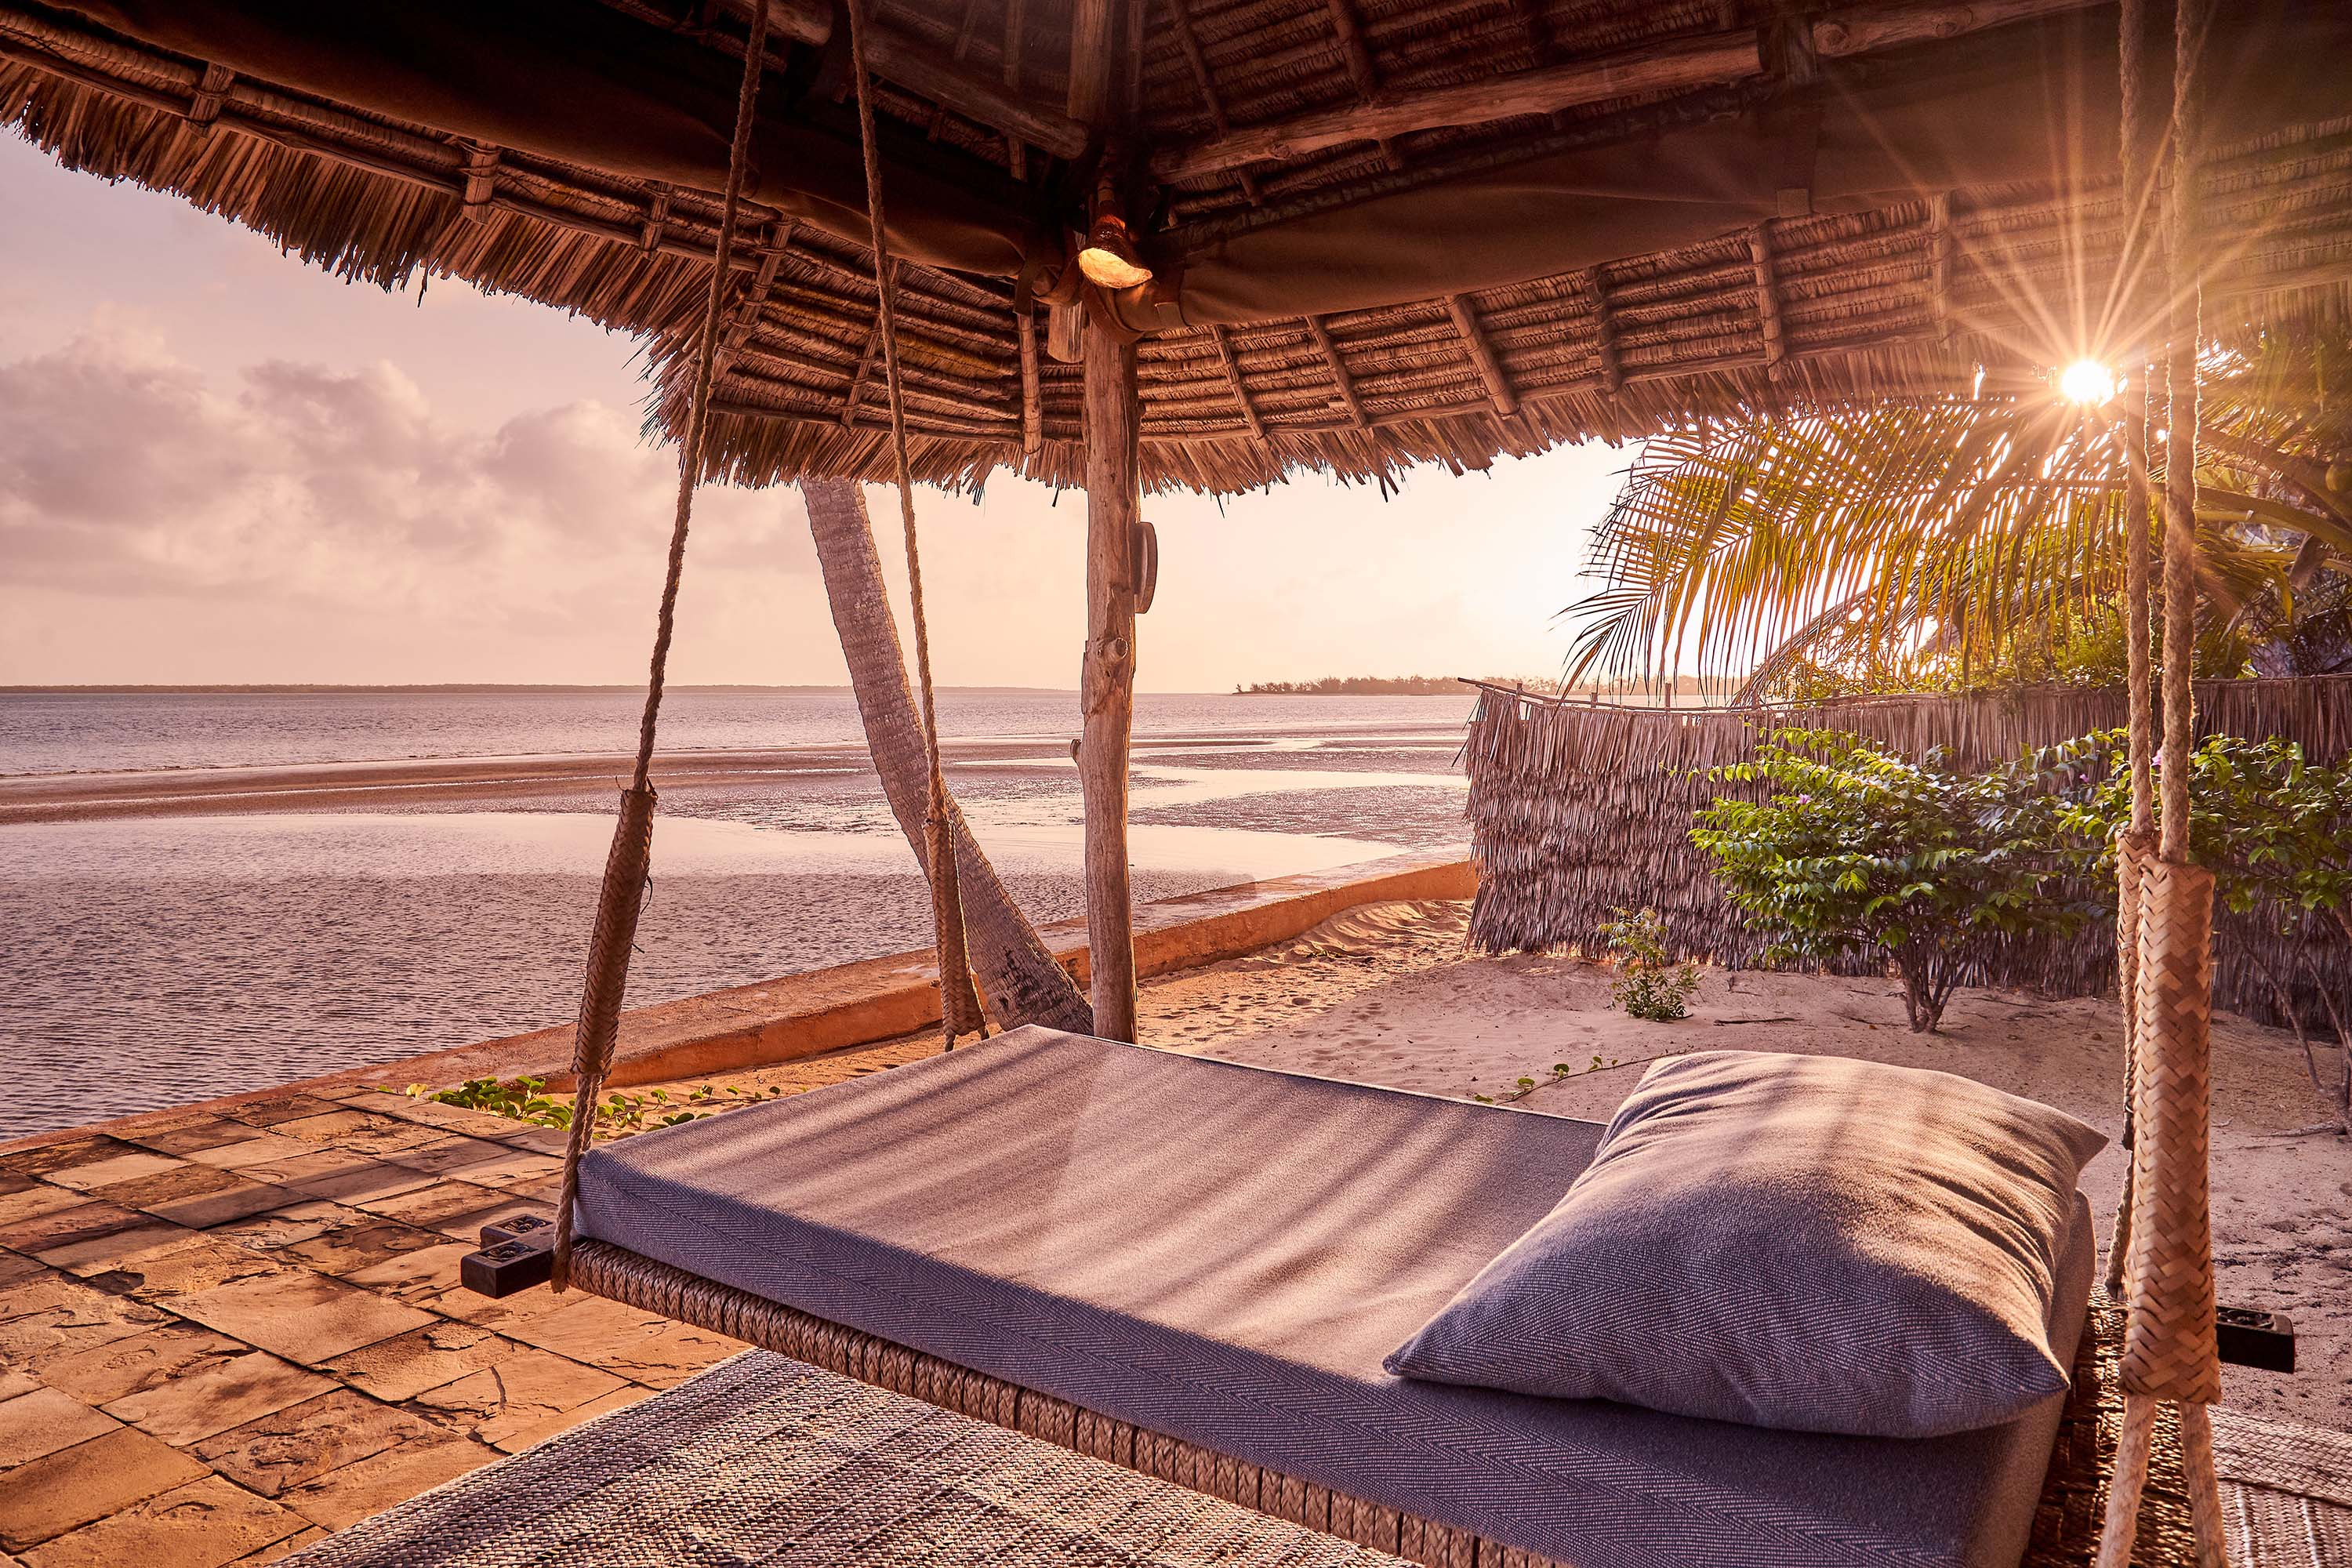 Daybed by the beach